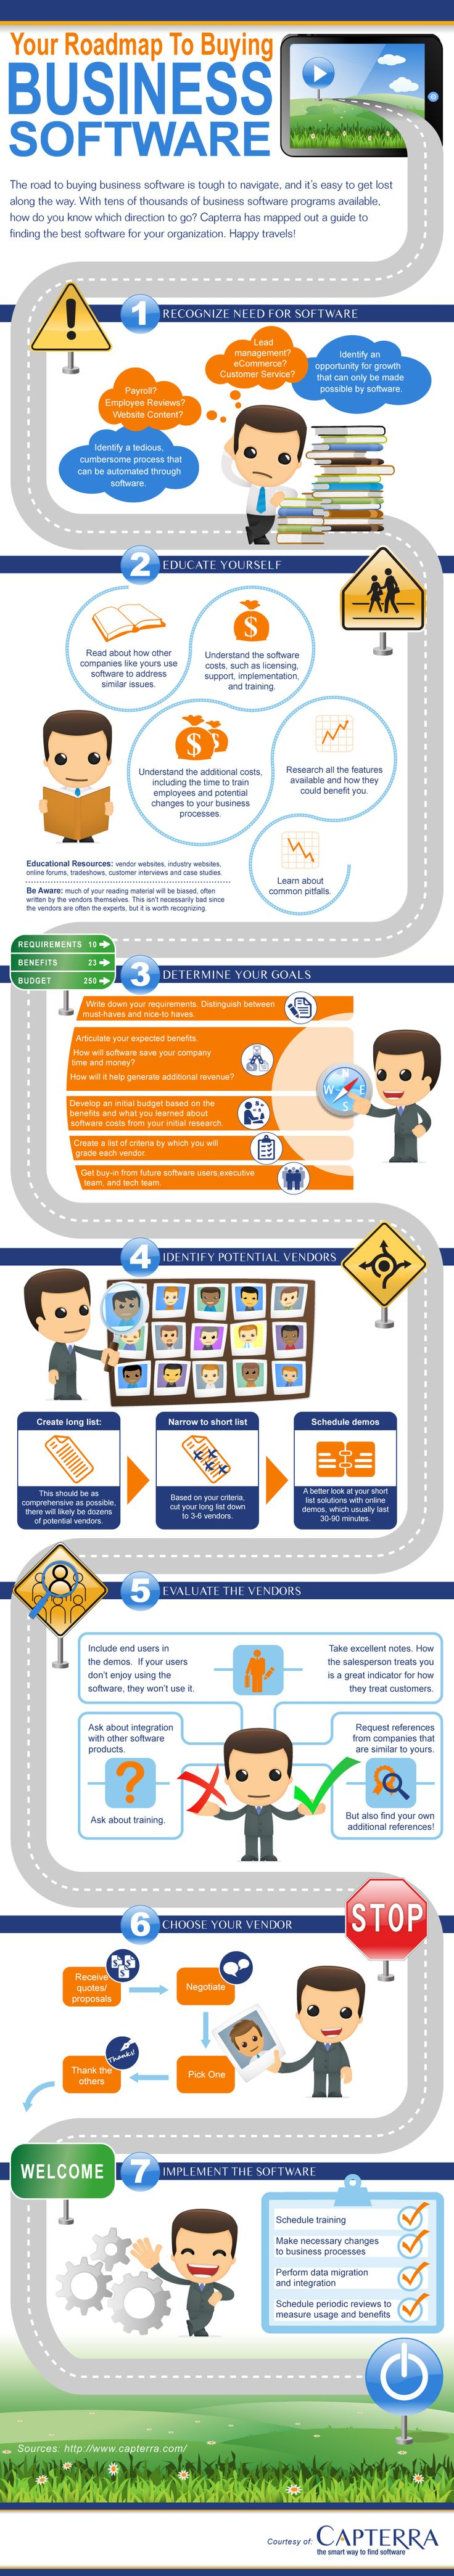 Road map to Buying Business Software